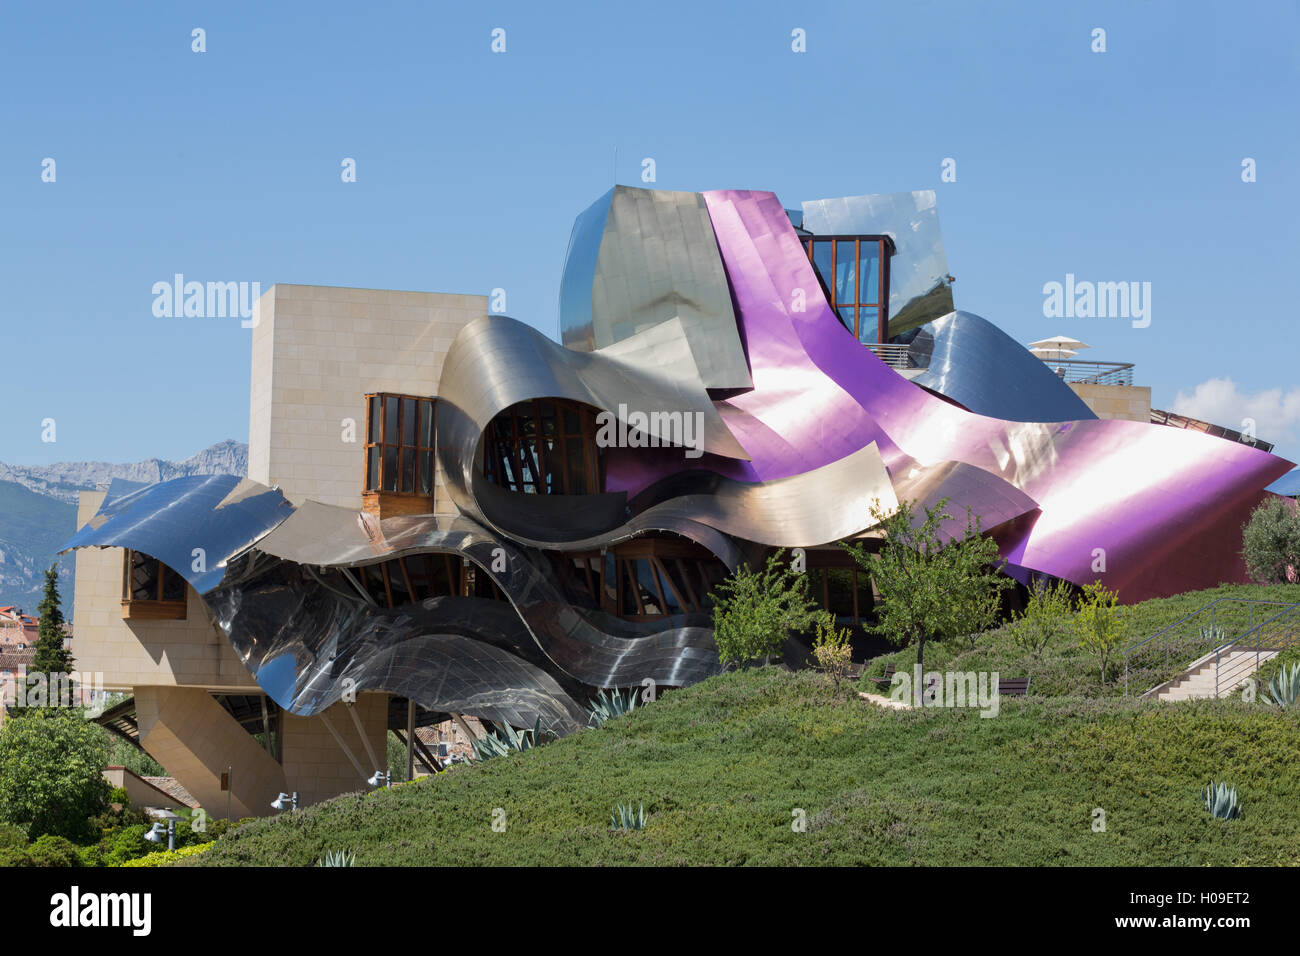 The Striking Hotel At Marques De Riscal Bodega Designed By Frank